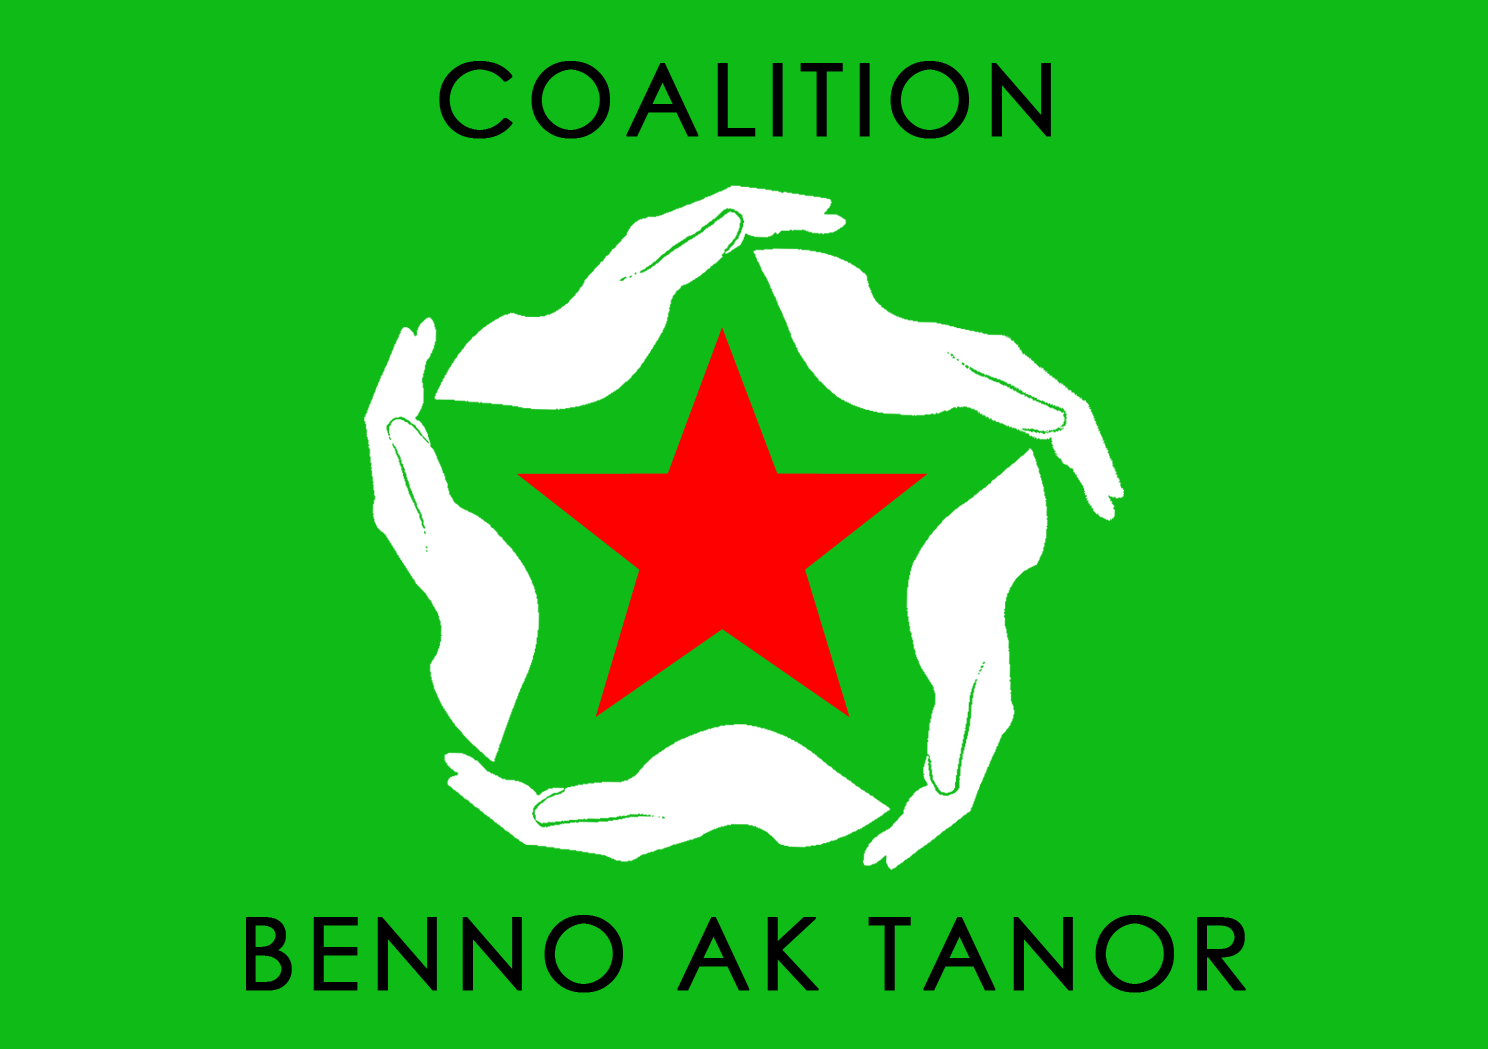 Coalition Benno ak Tanor